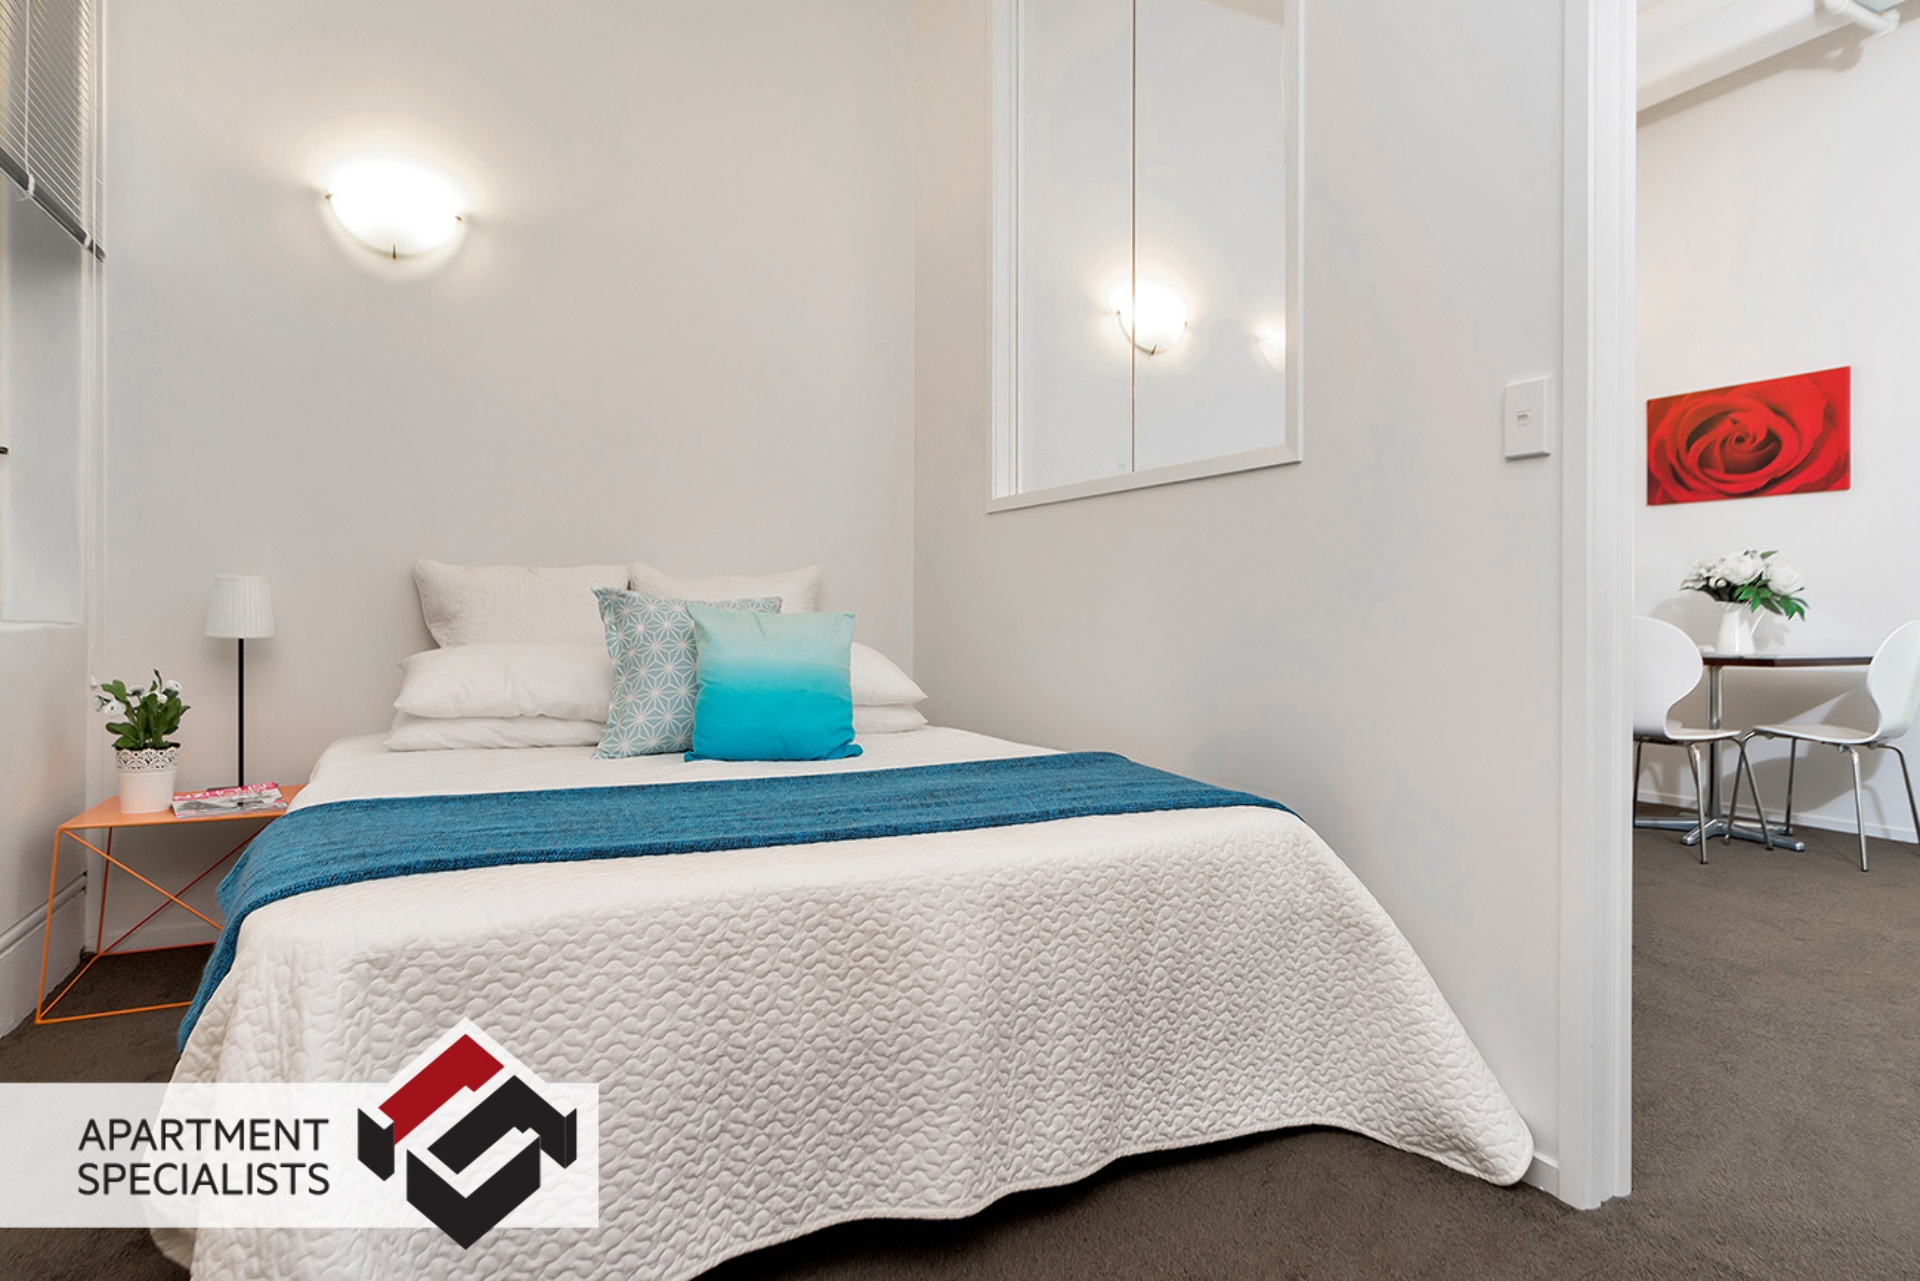 6 | 105 Queen Street, City Centre | Apartment Specialists